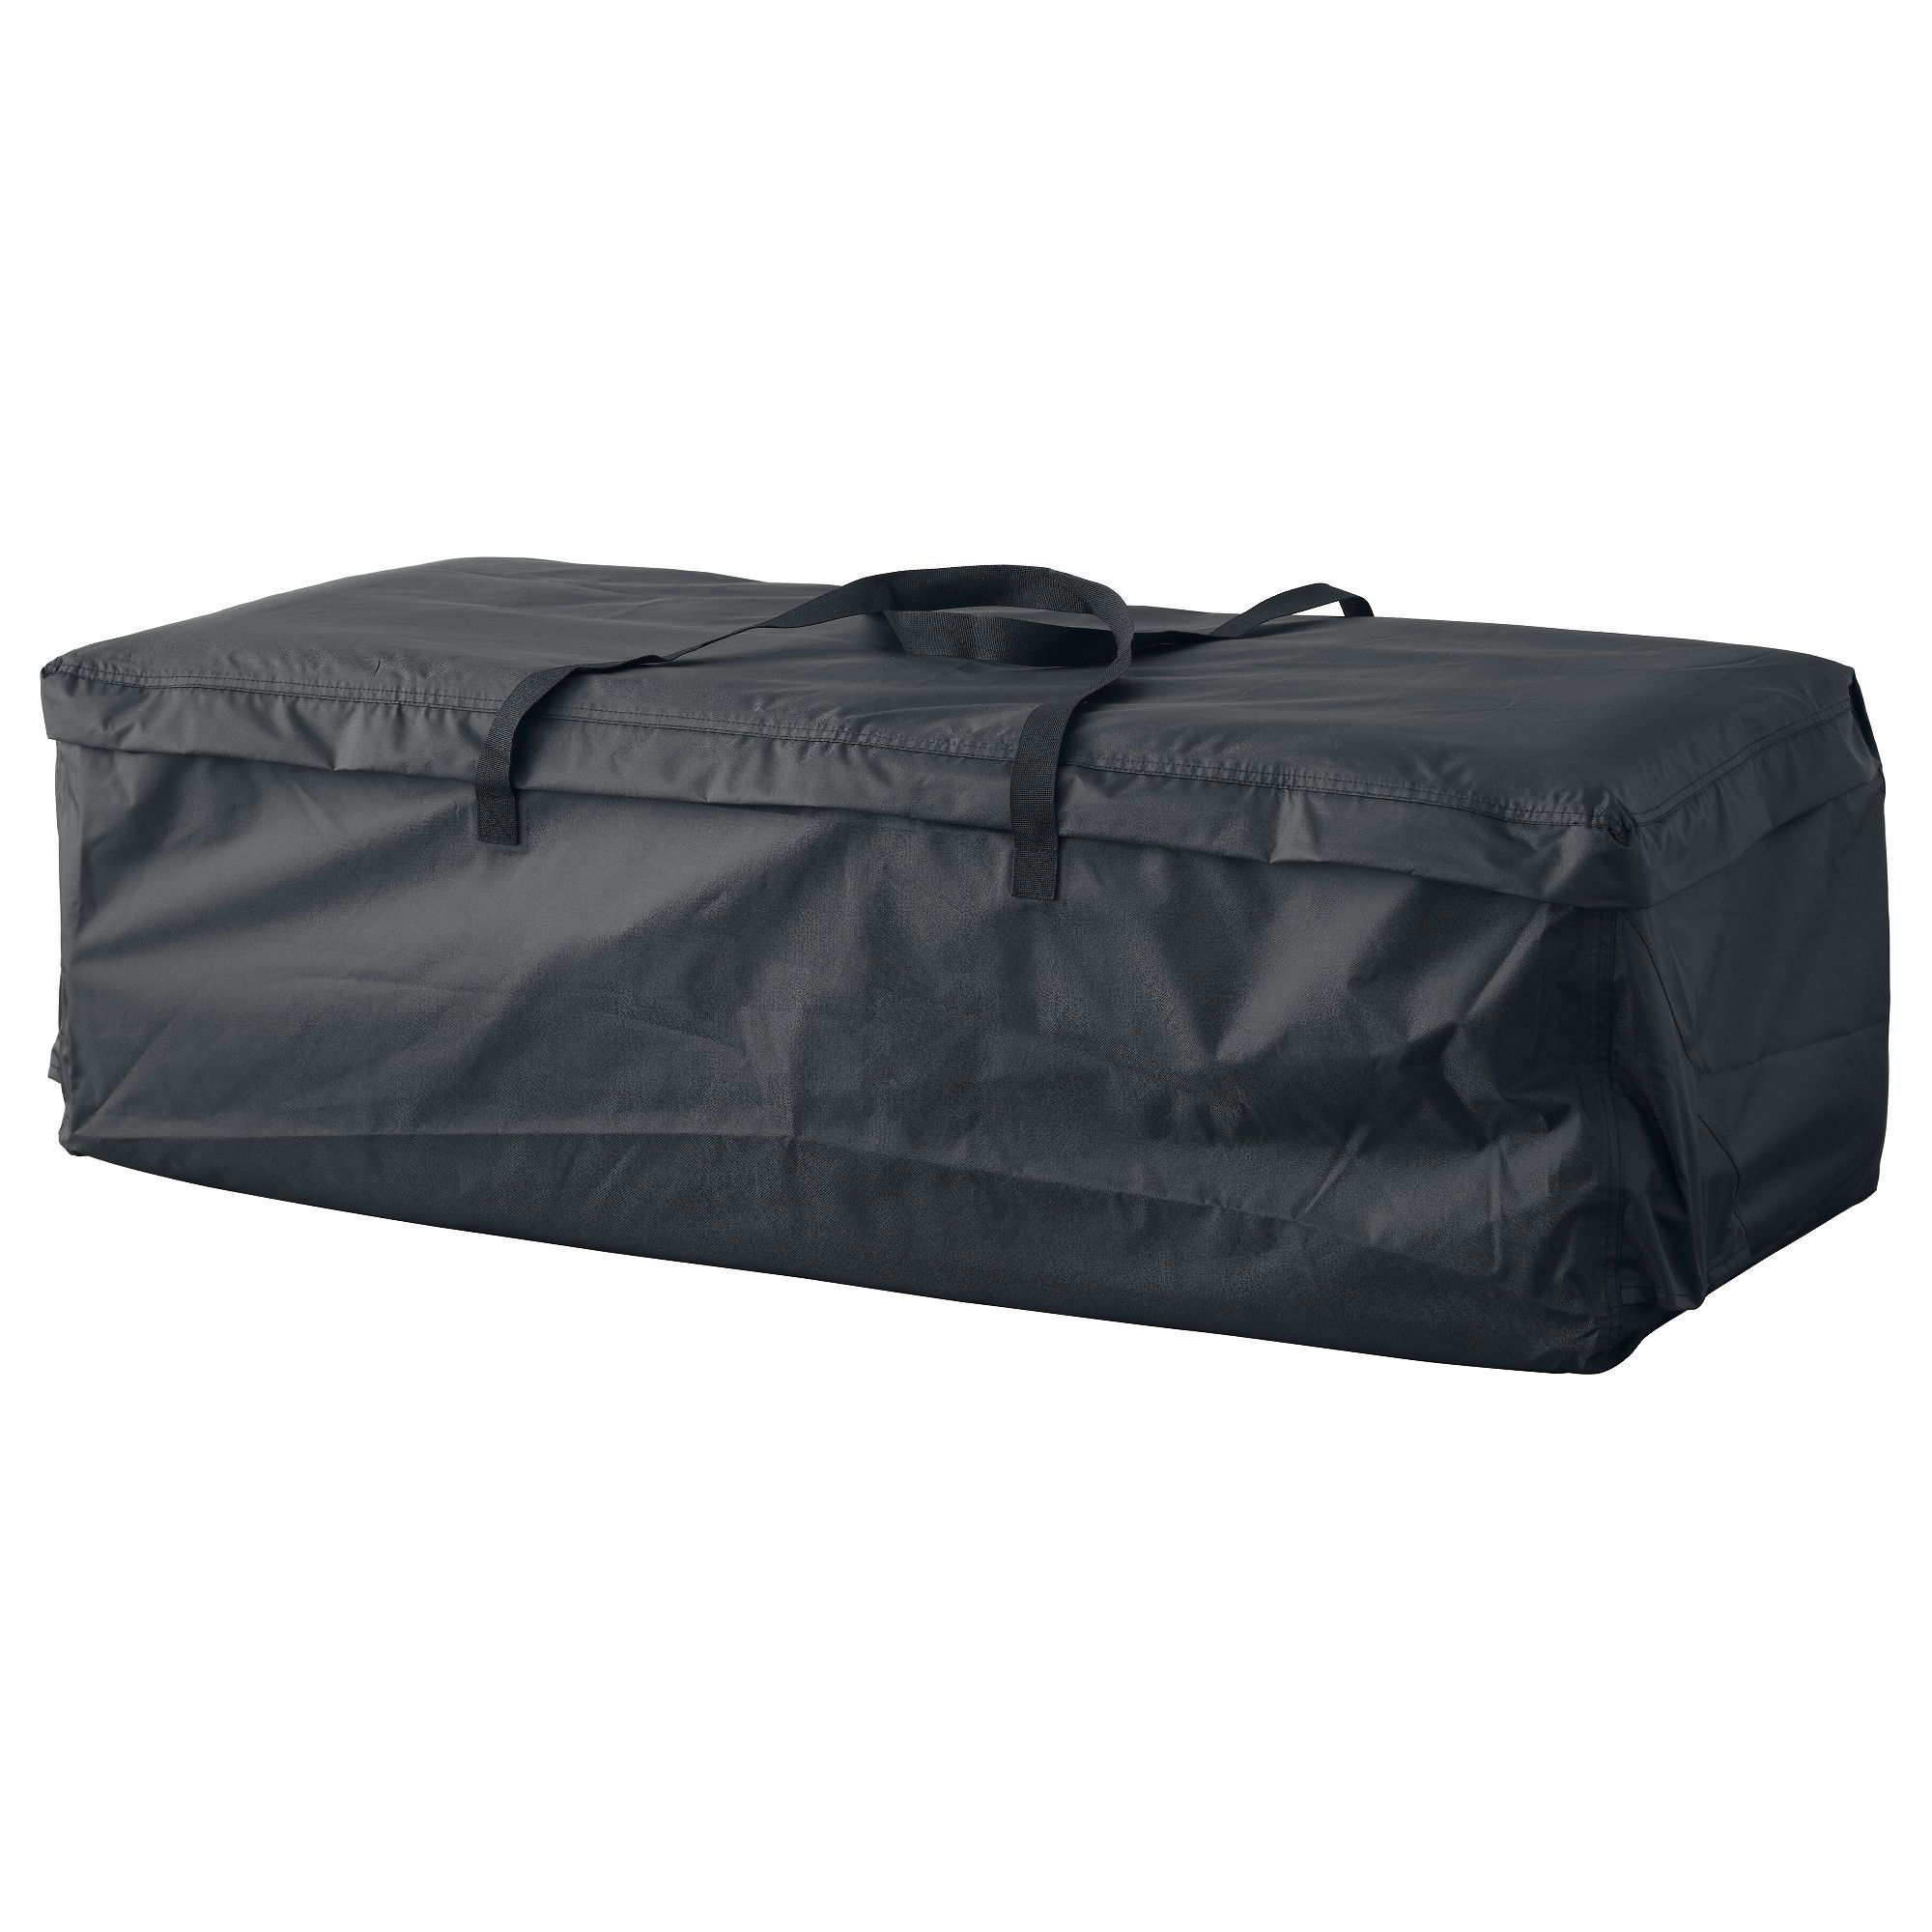 Tostero Storage Bag For Pads And Cushions Black 45 5 8x19 1 4 116x49 Cm Cushions Ikea Outdoor Cushions Ikea Garden Storage